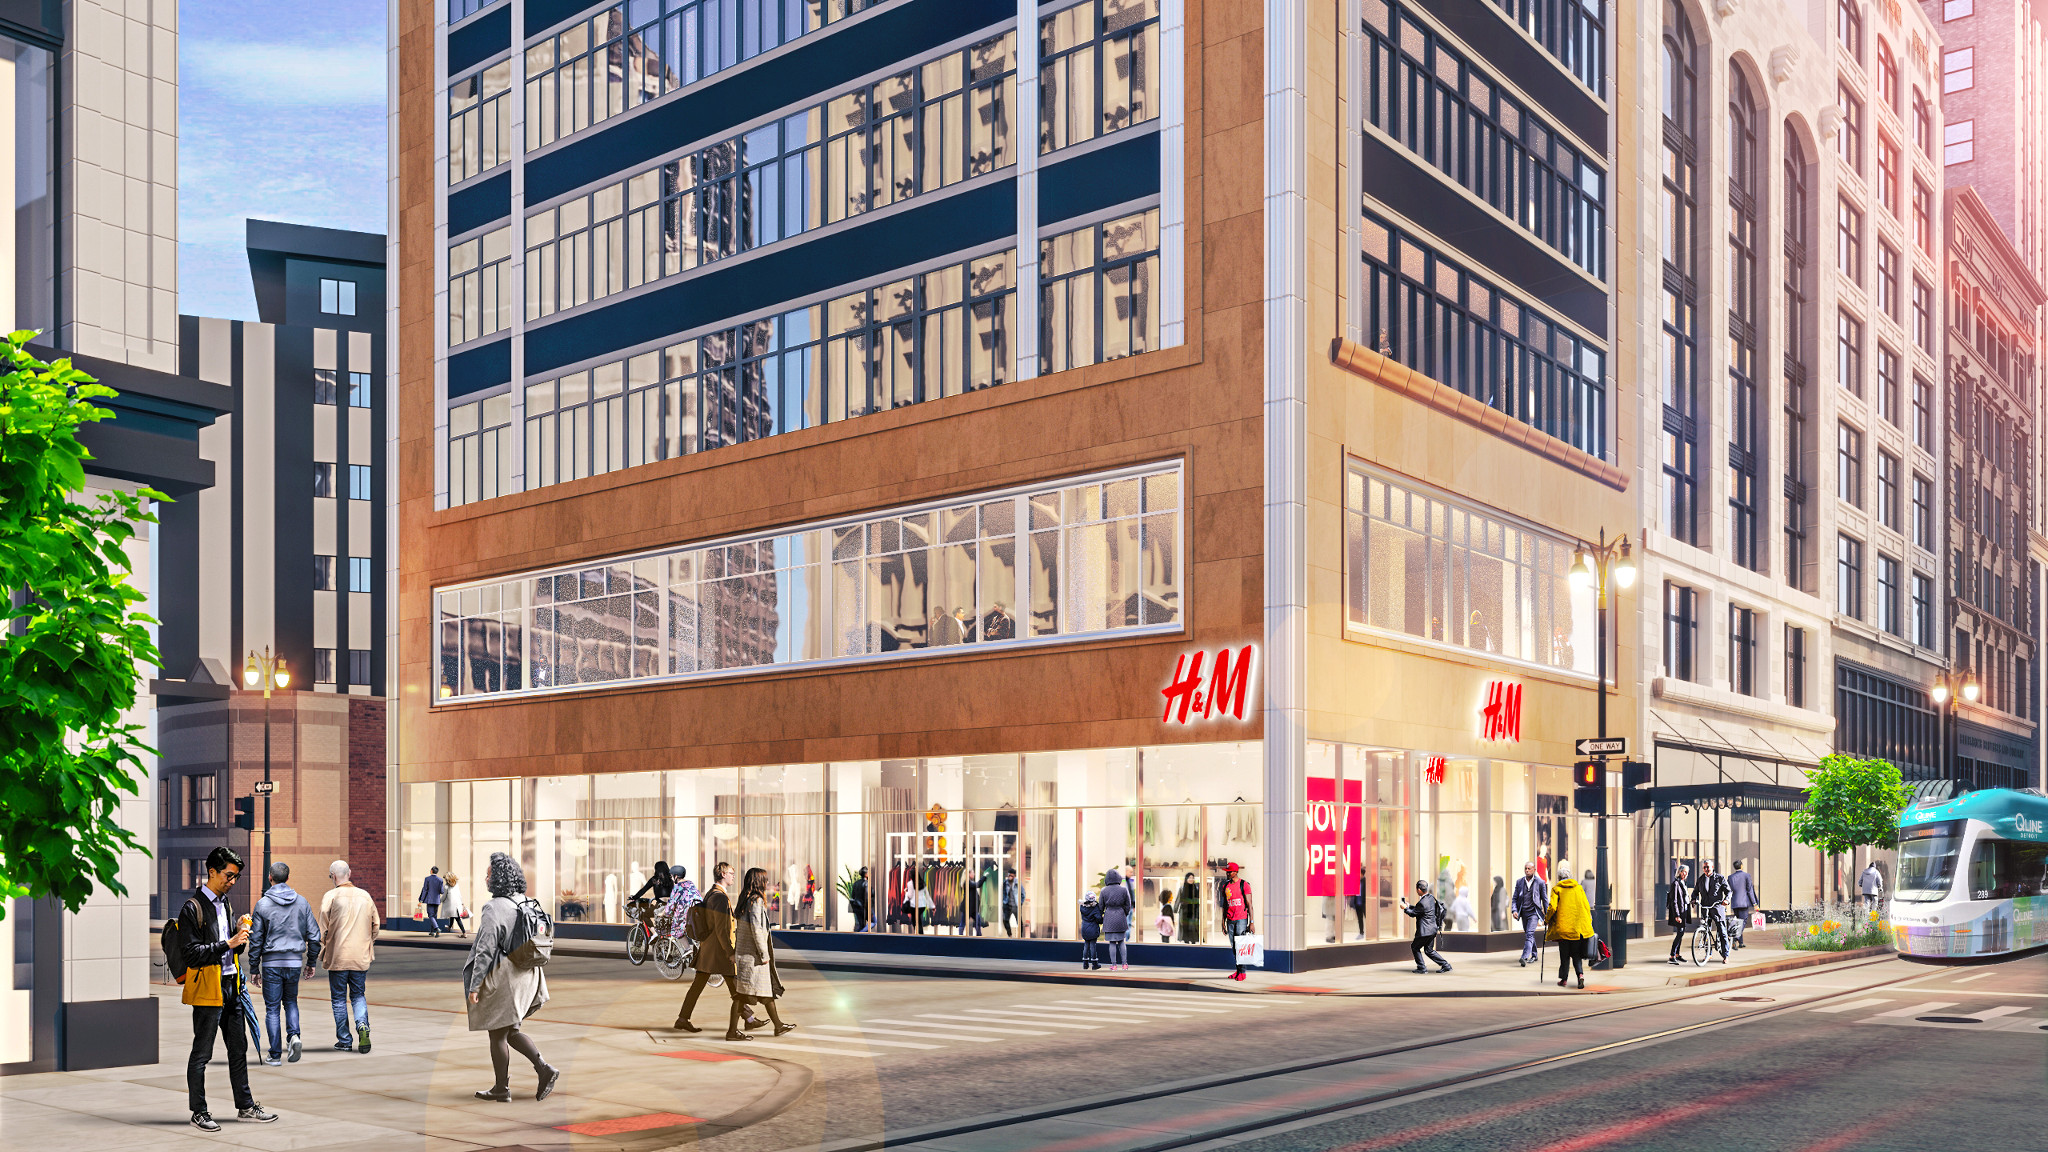 """A large building with a glass storefront and """"H&M"""" printed above the corner entrance. People walk around inside the store."""